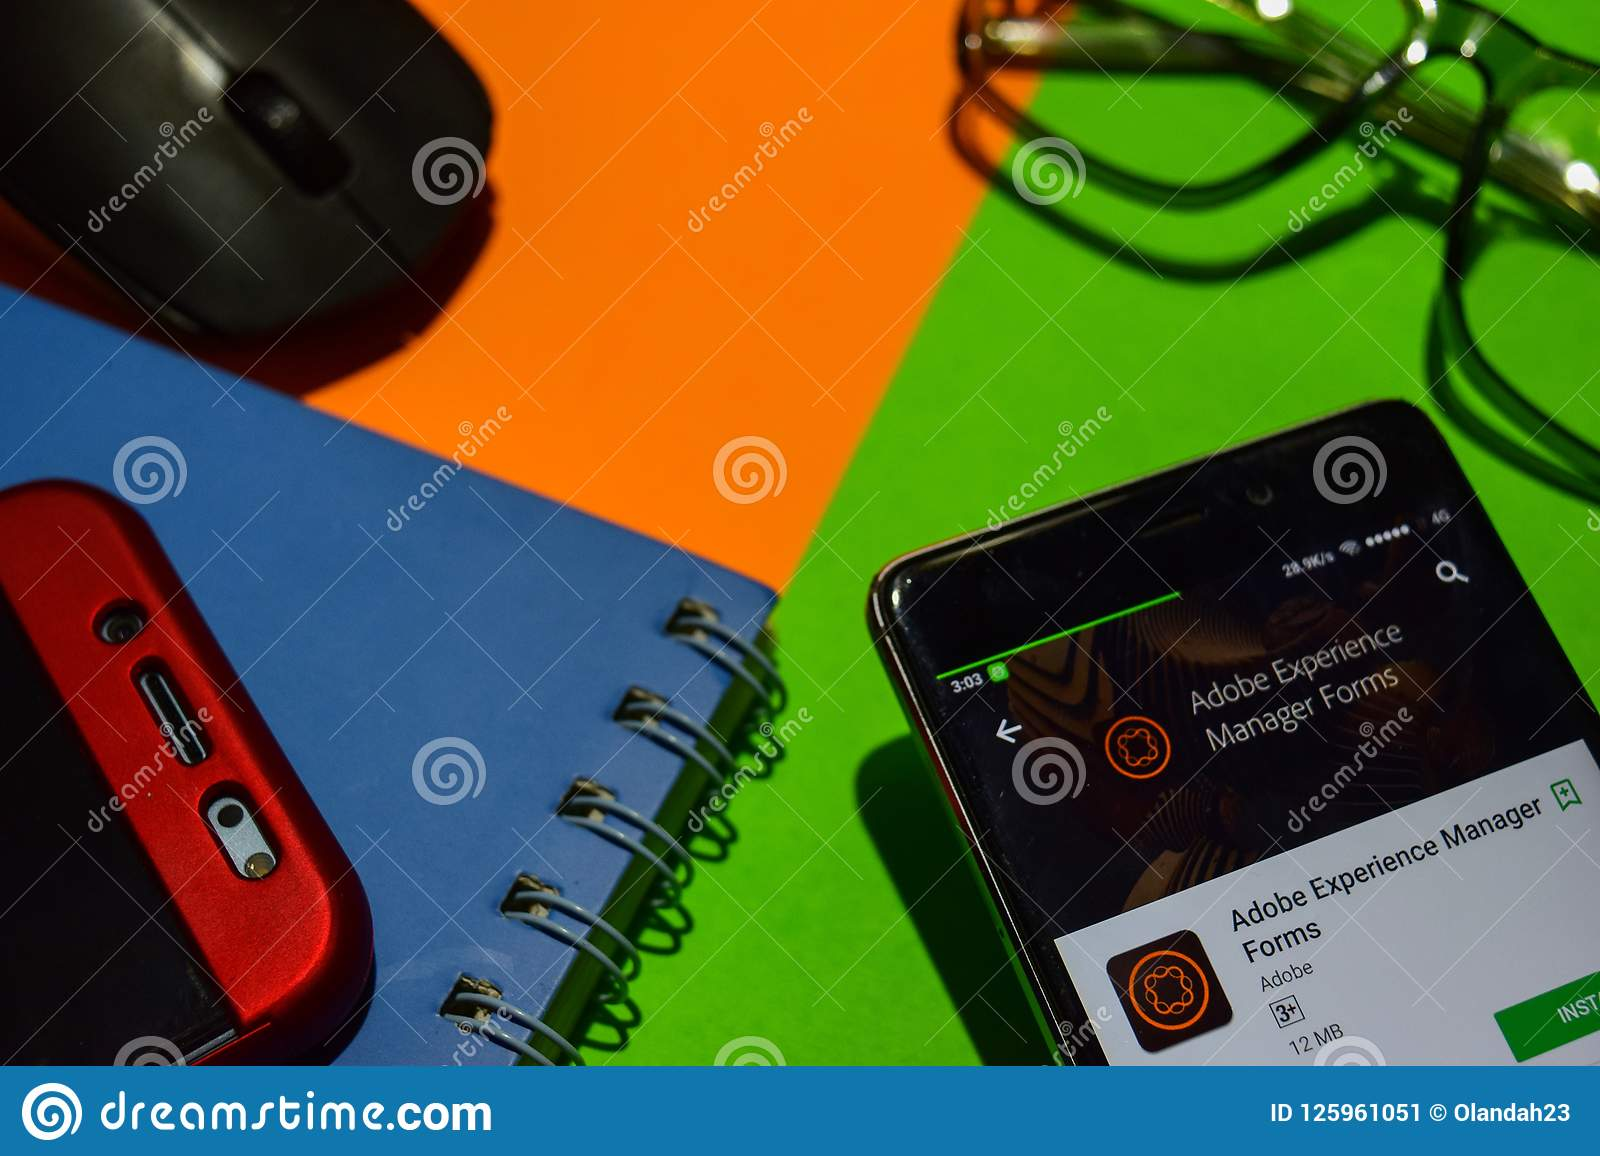 Adobe Experience Manager Forms Dev App On Smartphone Screen